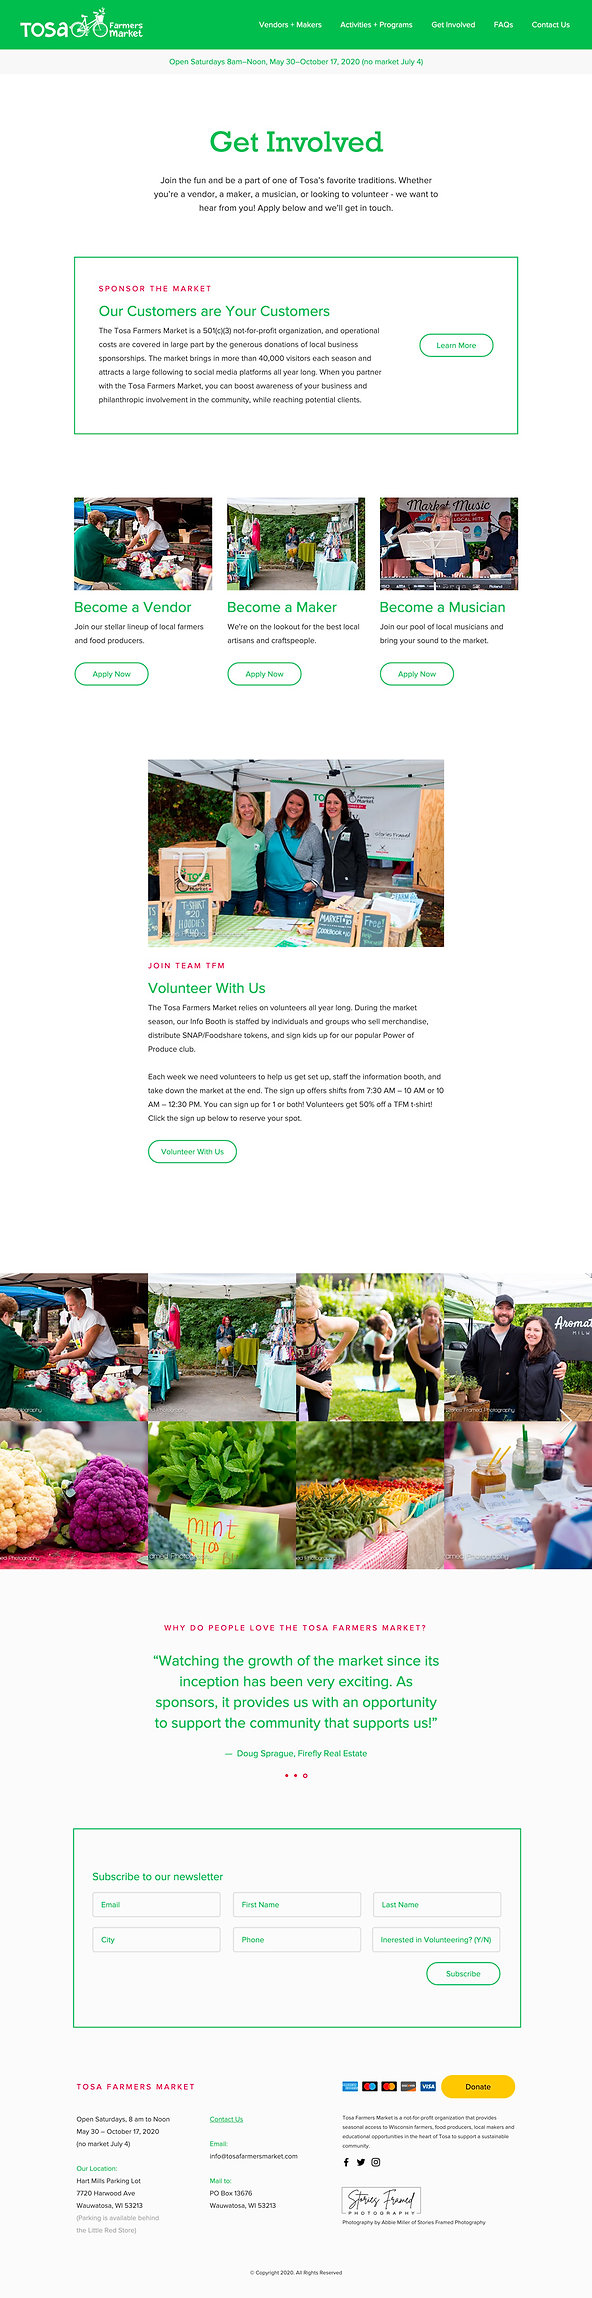 Tosa Farmers Market Website Get Involved Page